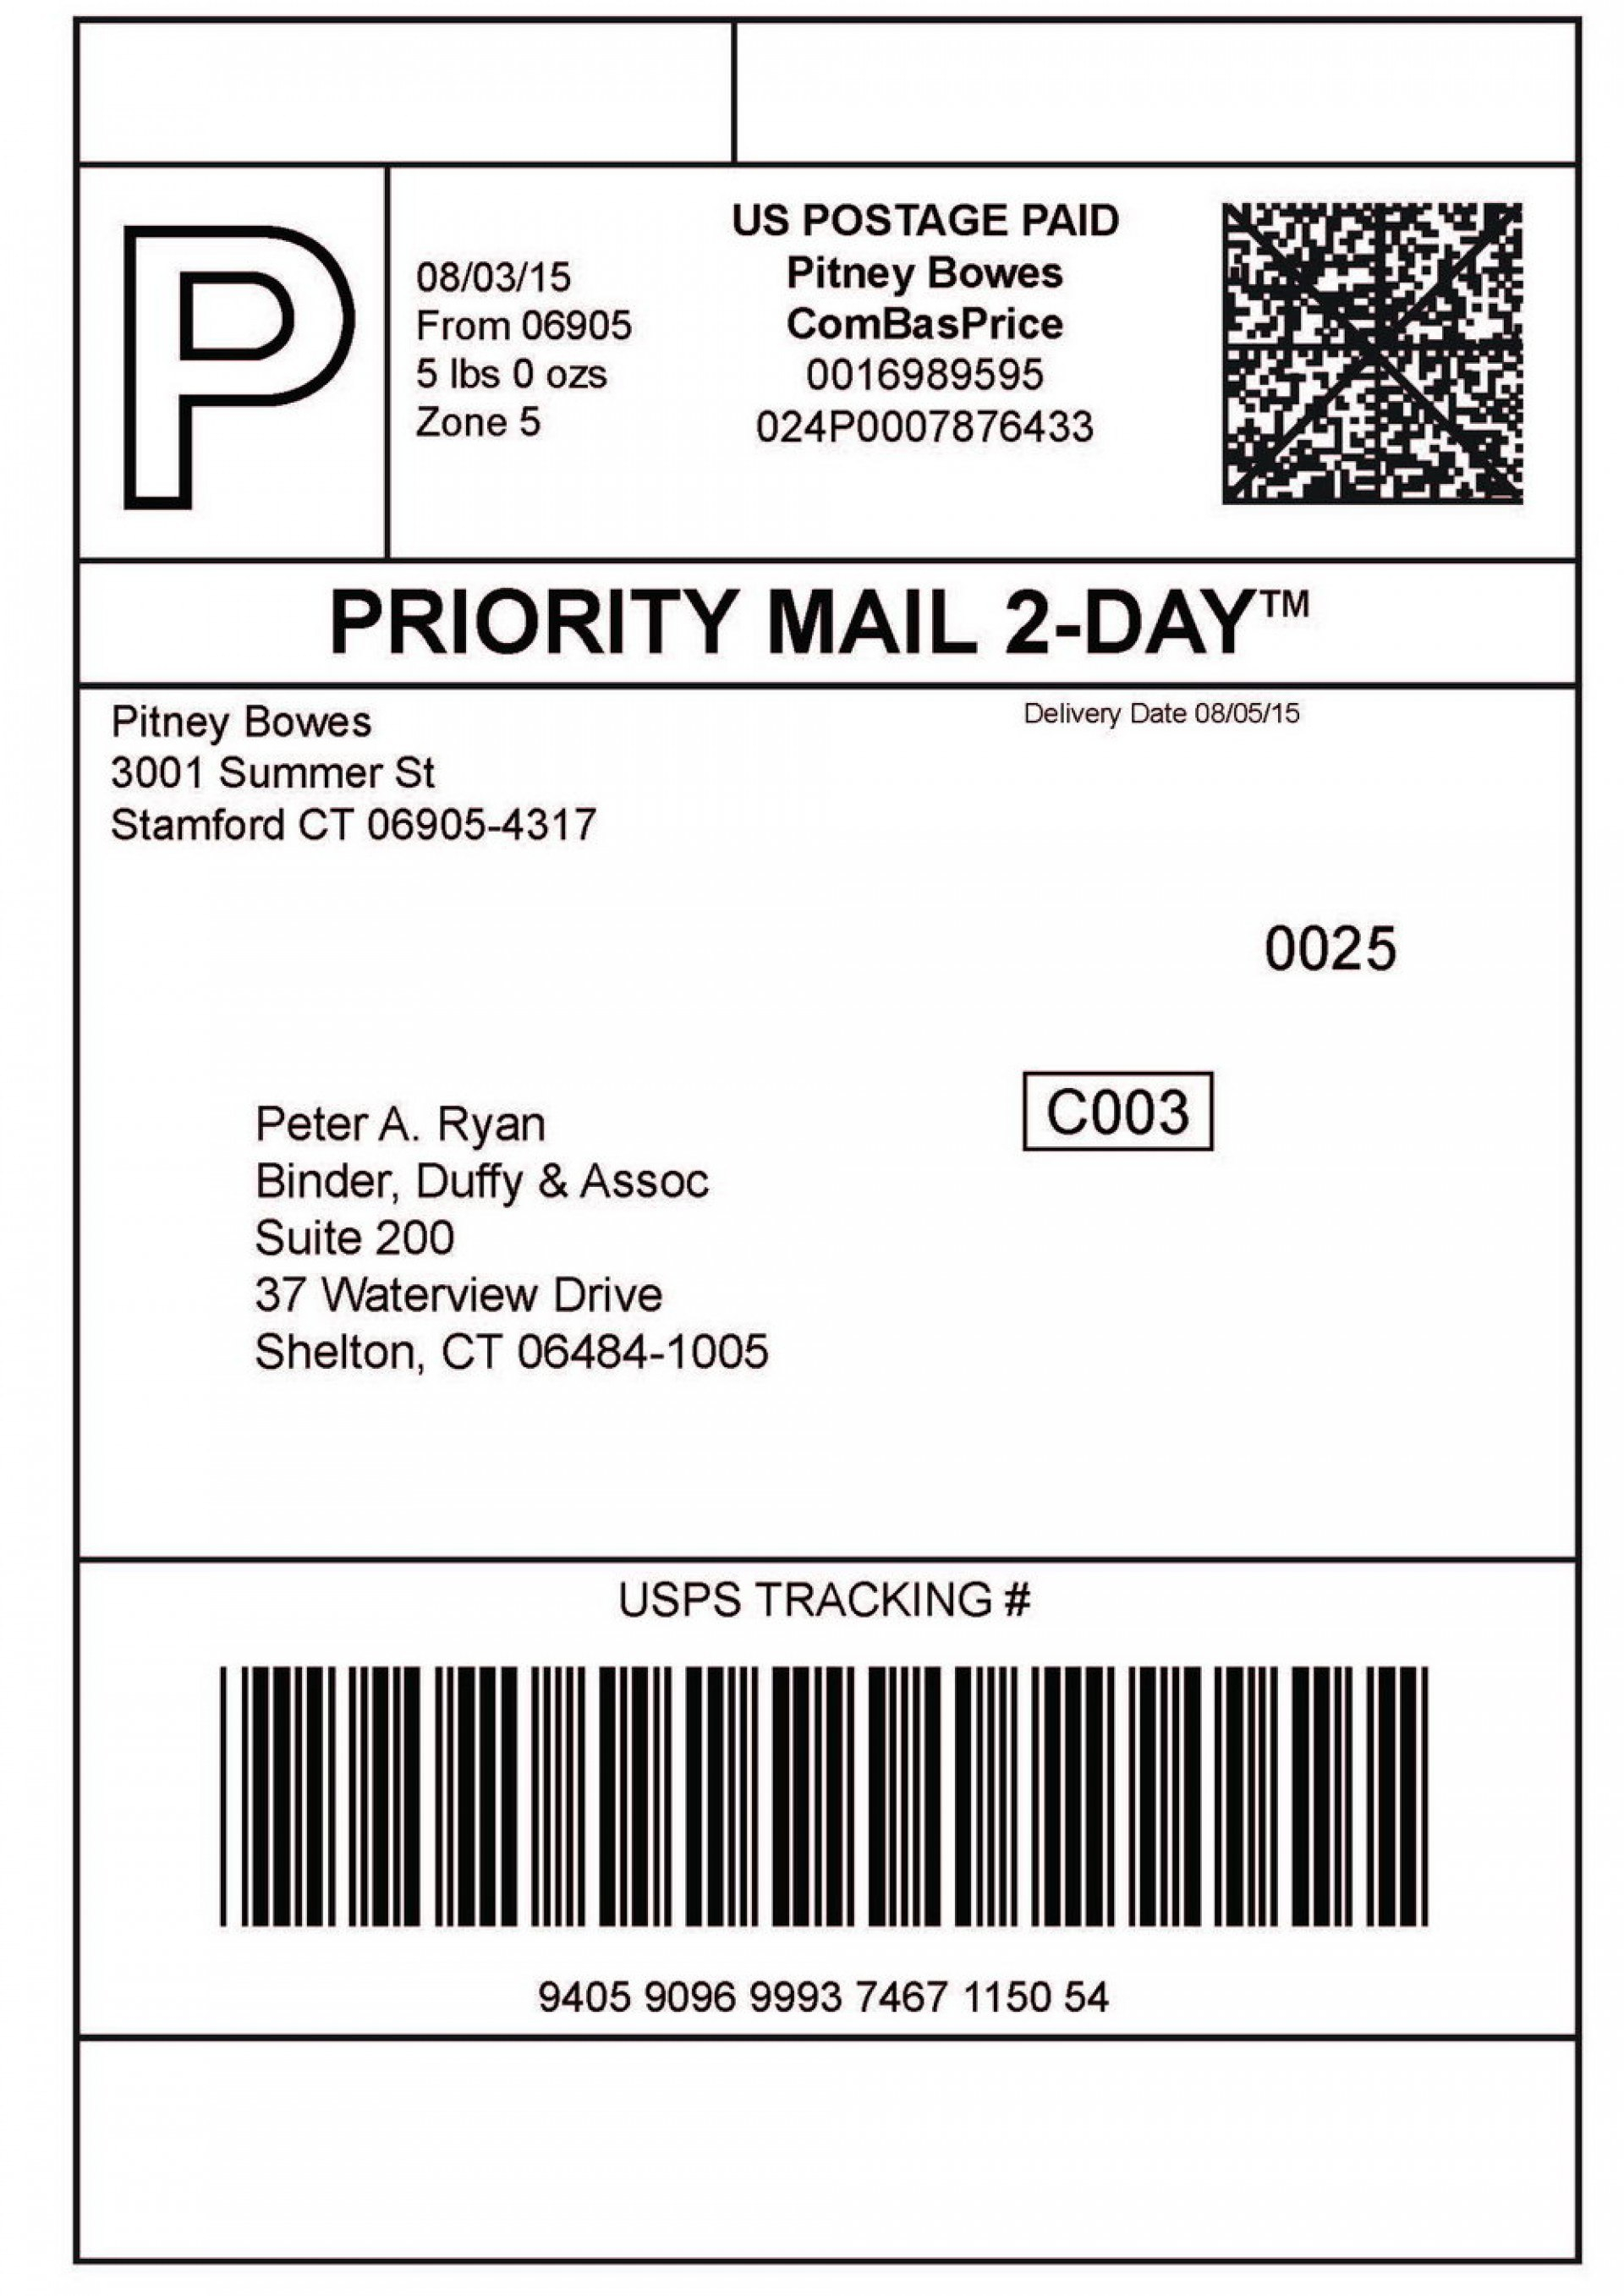 Ups Shipping Label Template - 10+ Professional Templates